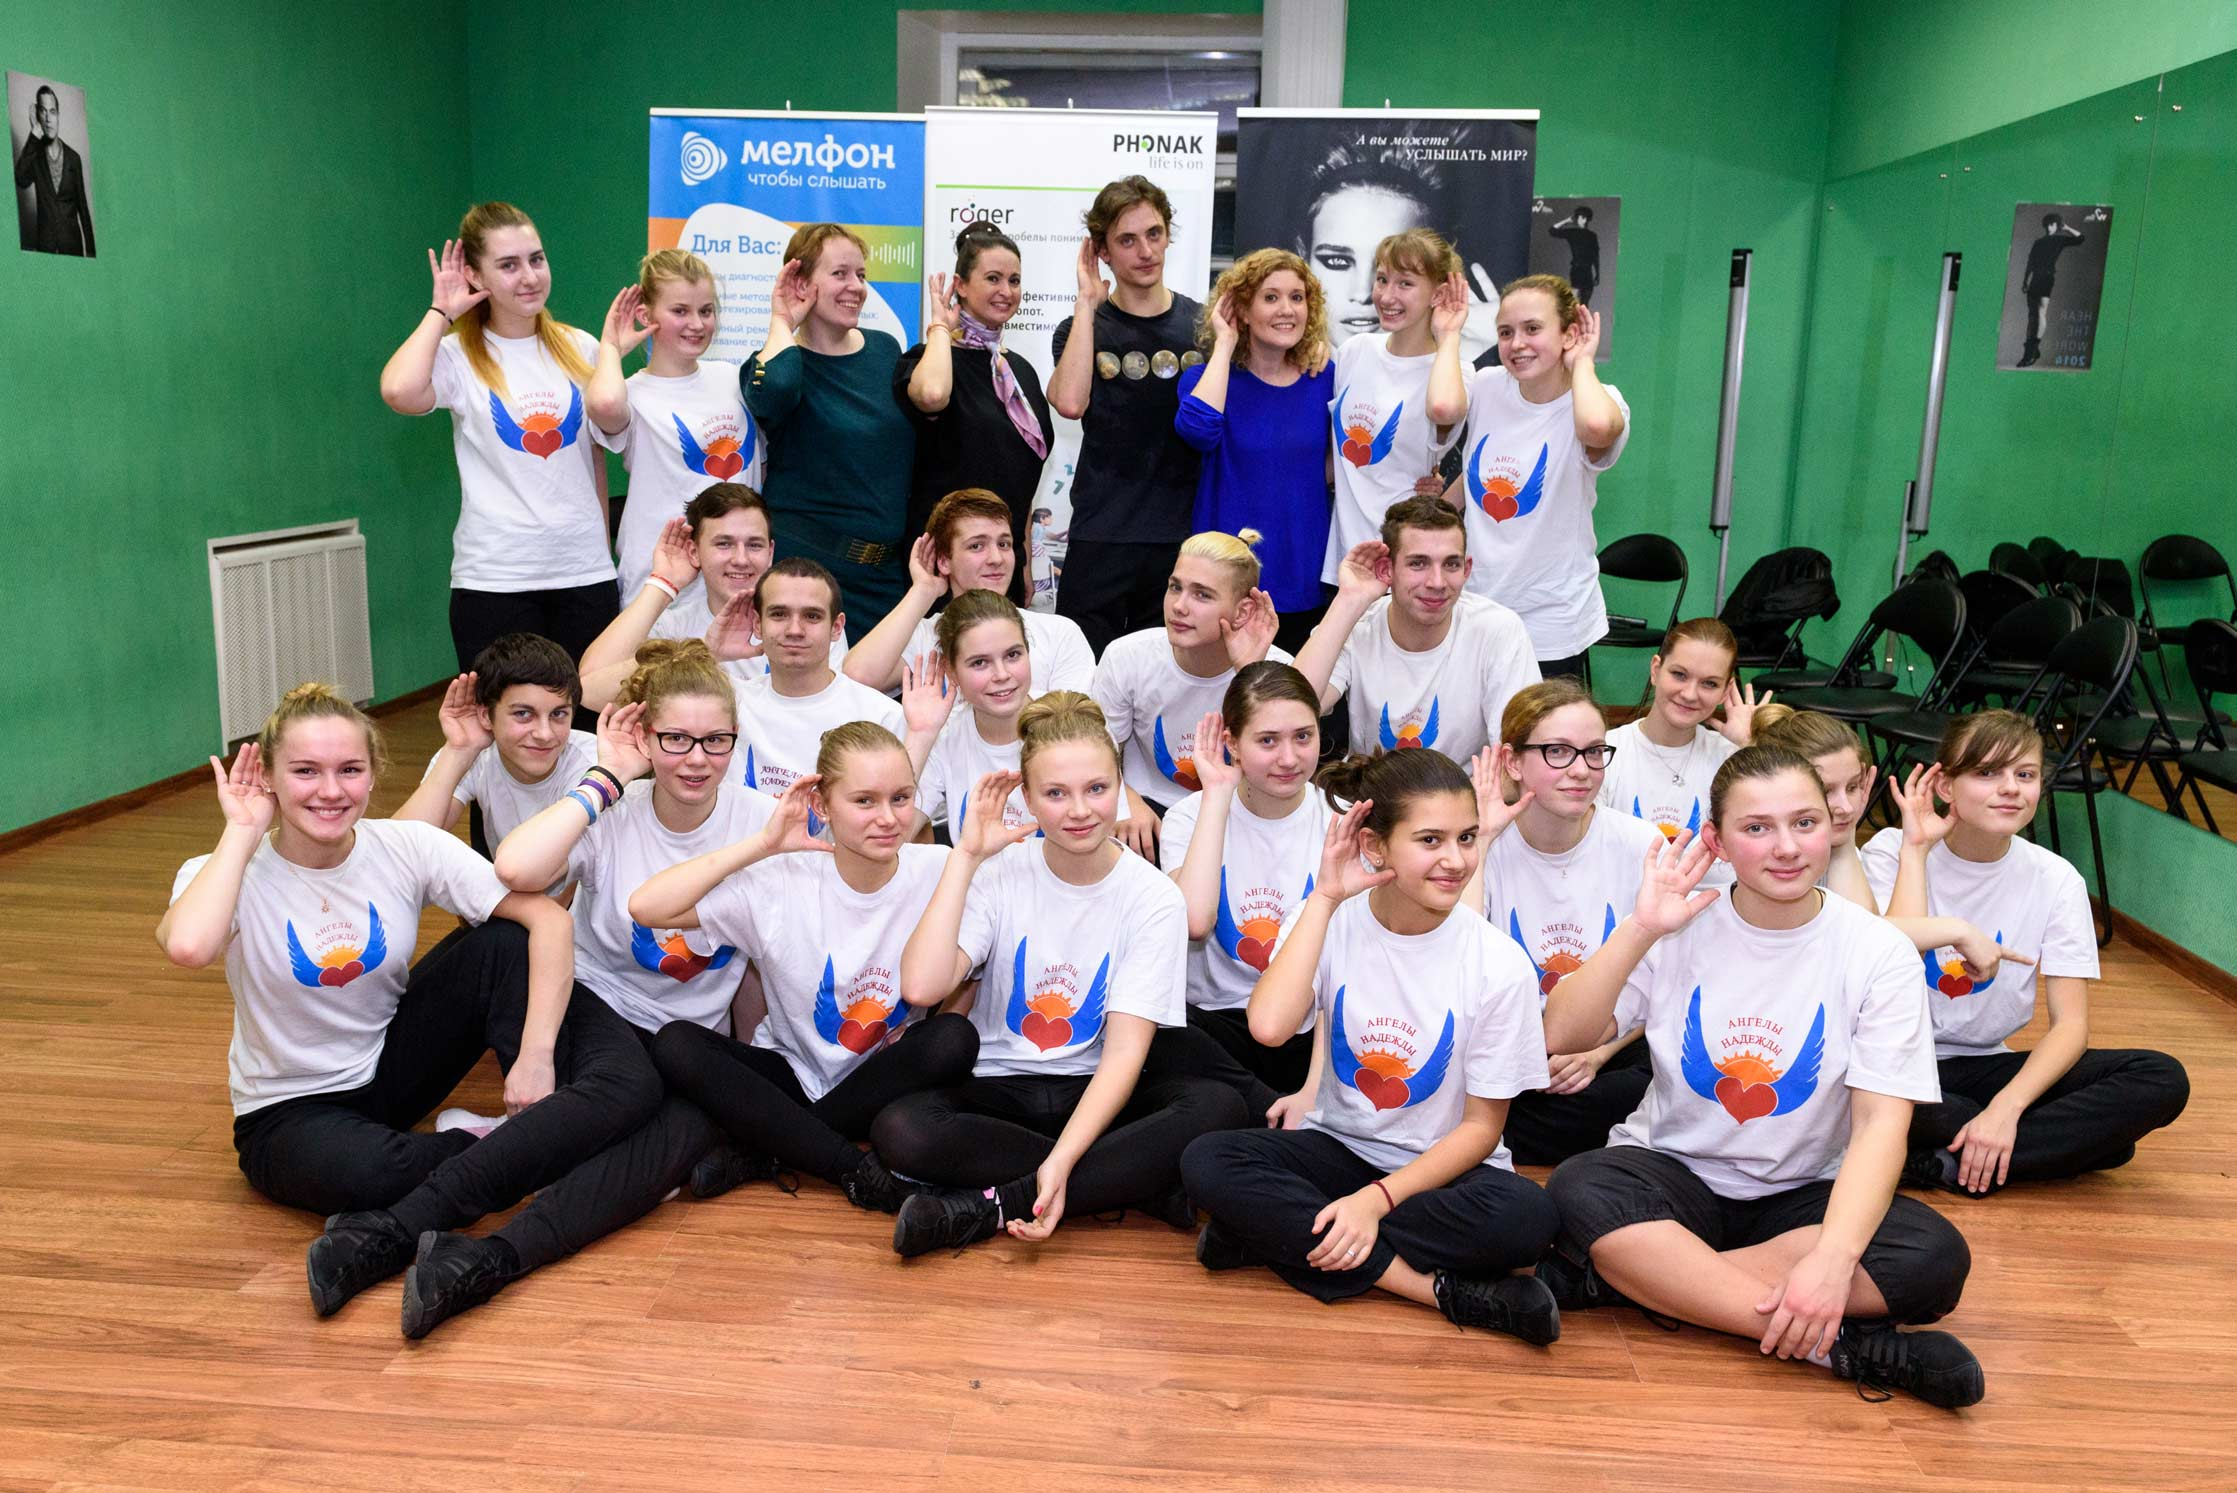 Sergei-Polunin-dances-with-teens-hearing-loss-Hear-the-World-Foundation-02